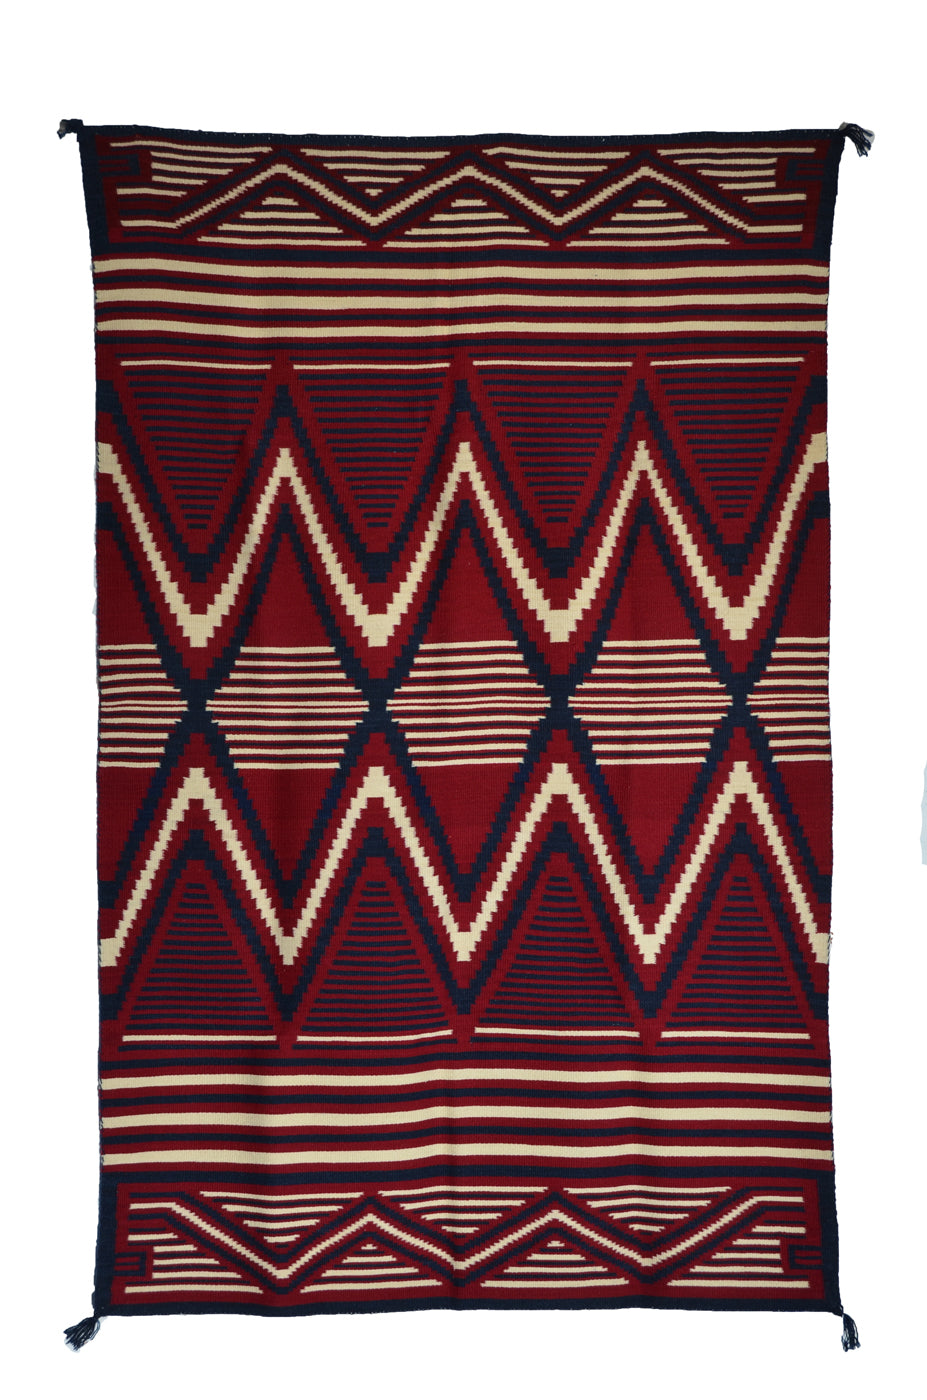 Serape woven with natural dyes-churro wool